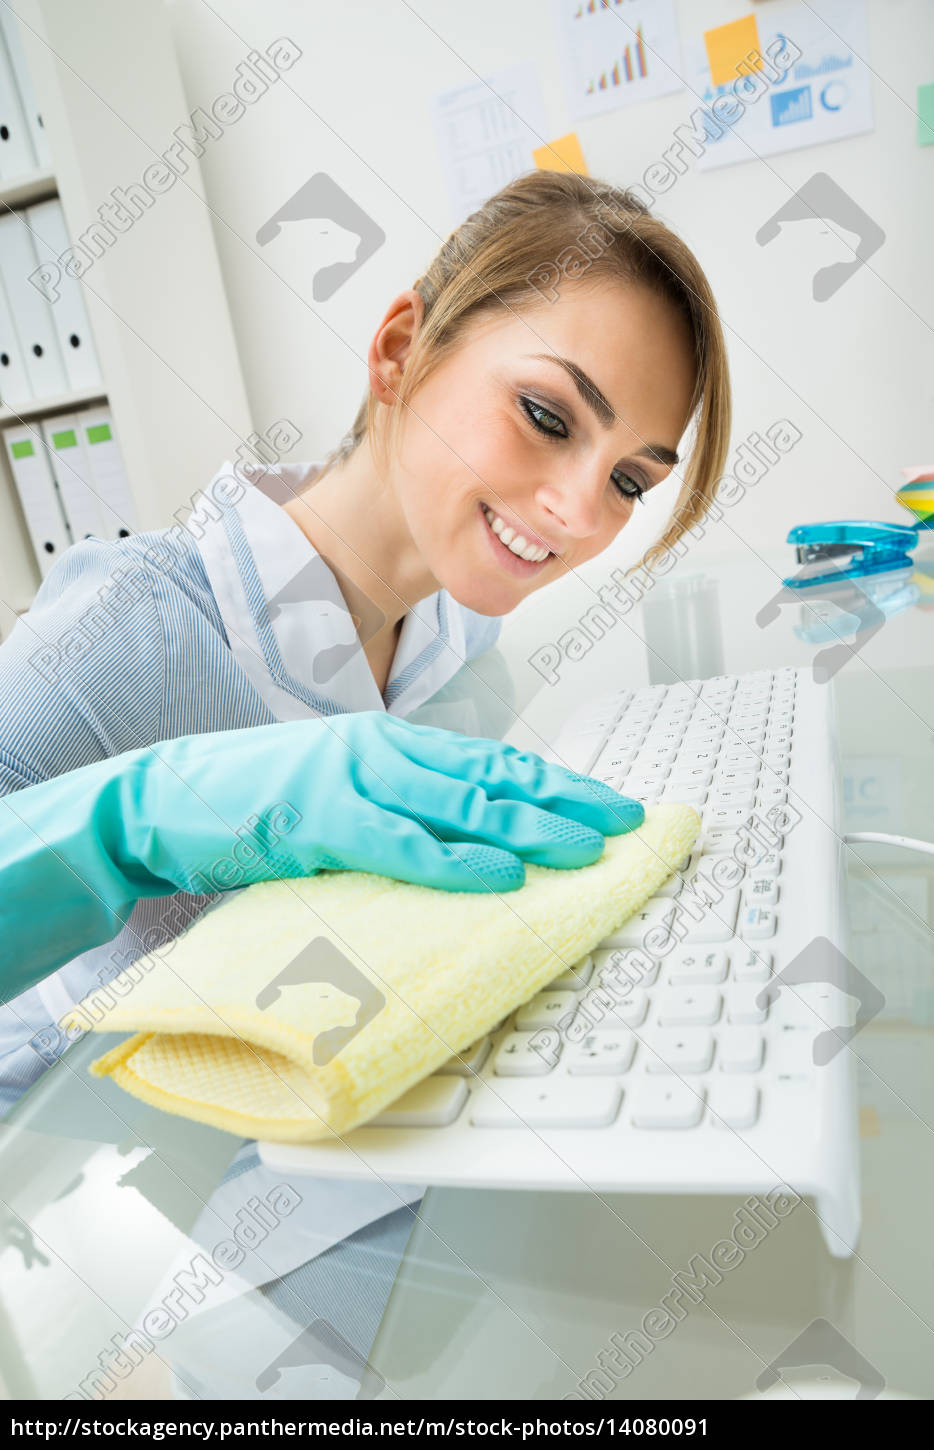 maid, cleaning, keyboard, at, desk - 14080091